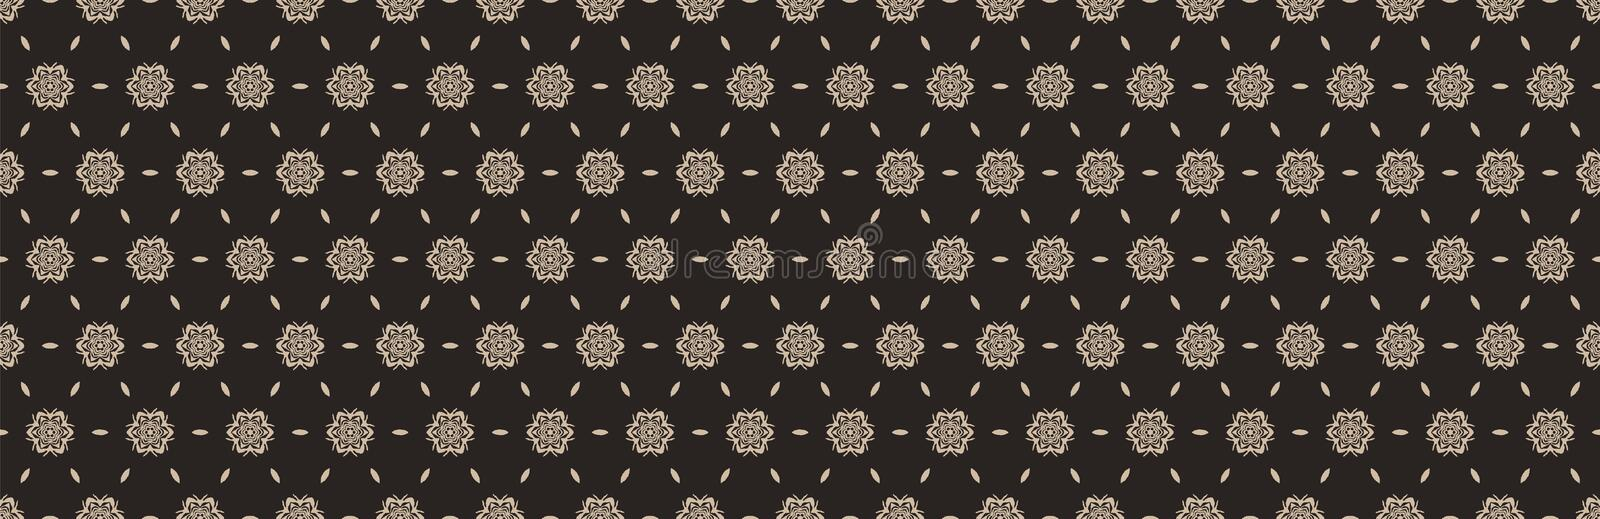 Hand drawn damask stripe seamless border pattern. Modern japanese edging medallion motif on dark homespun brown. Ecru elegant vector illustration